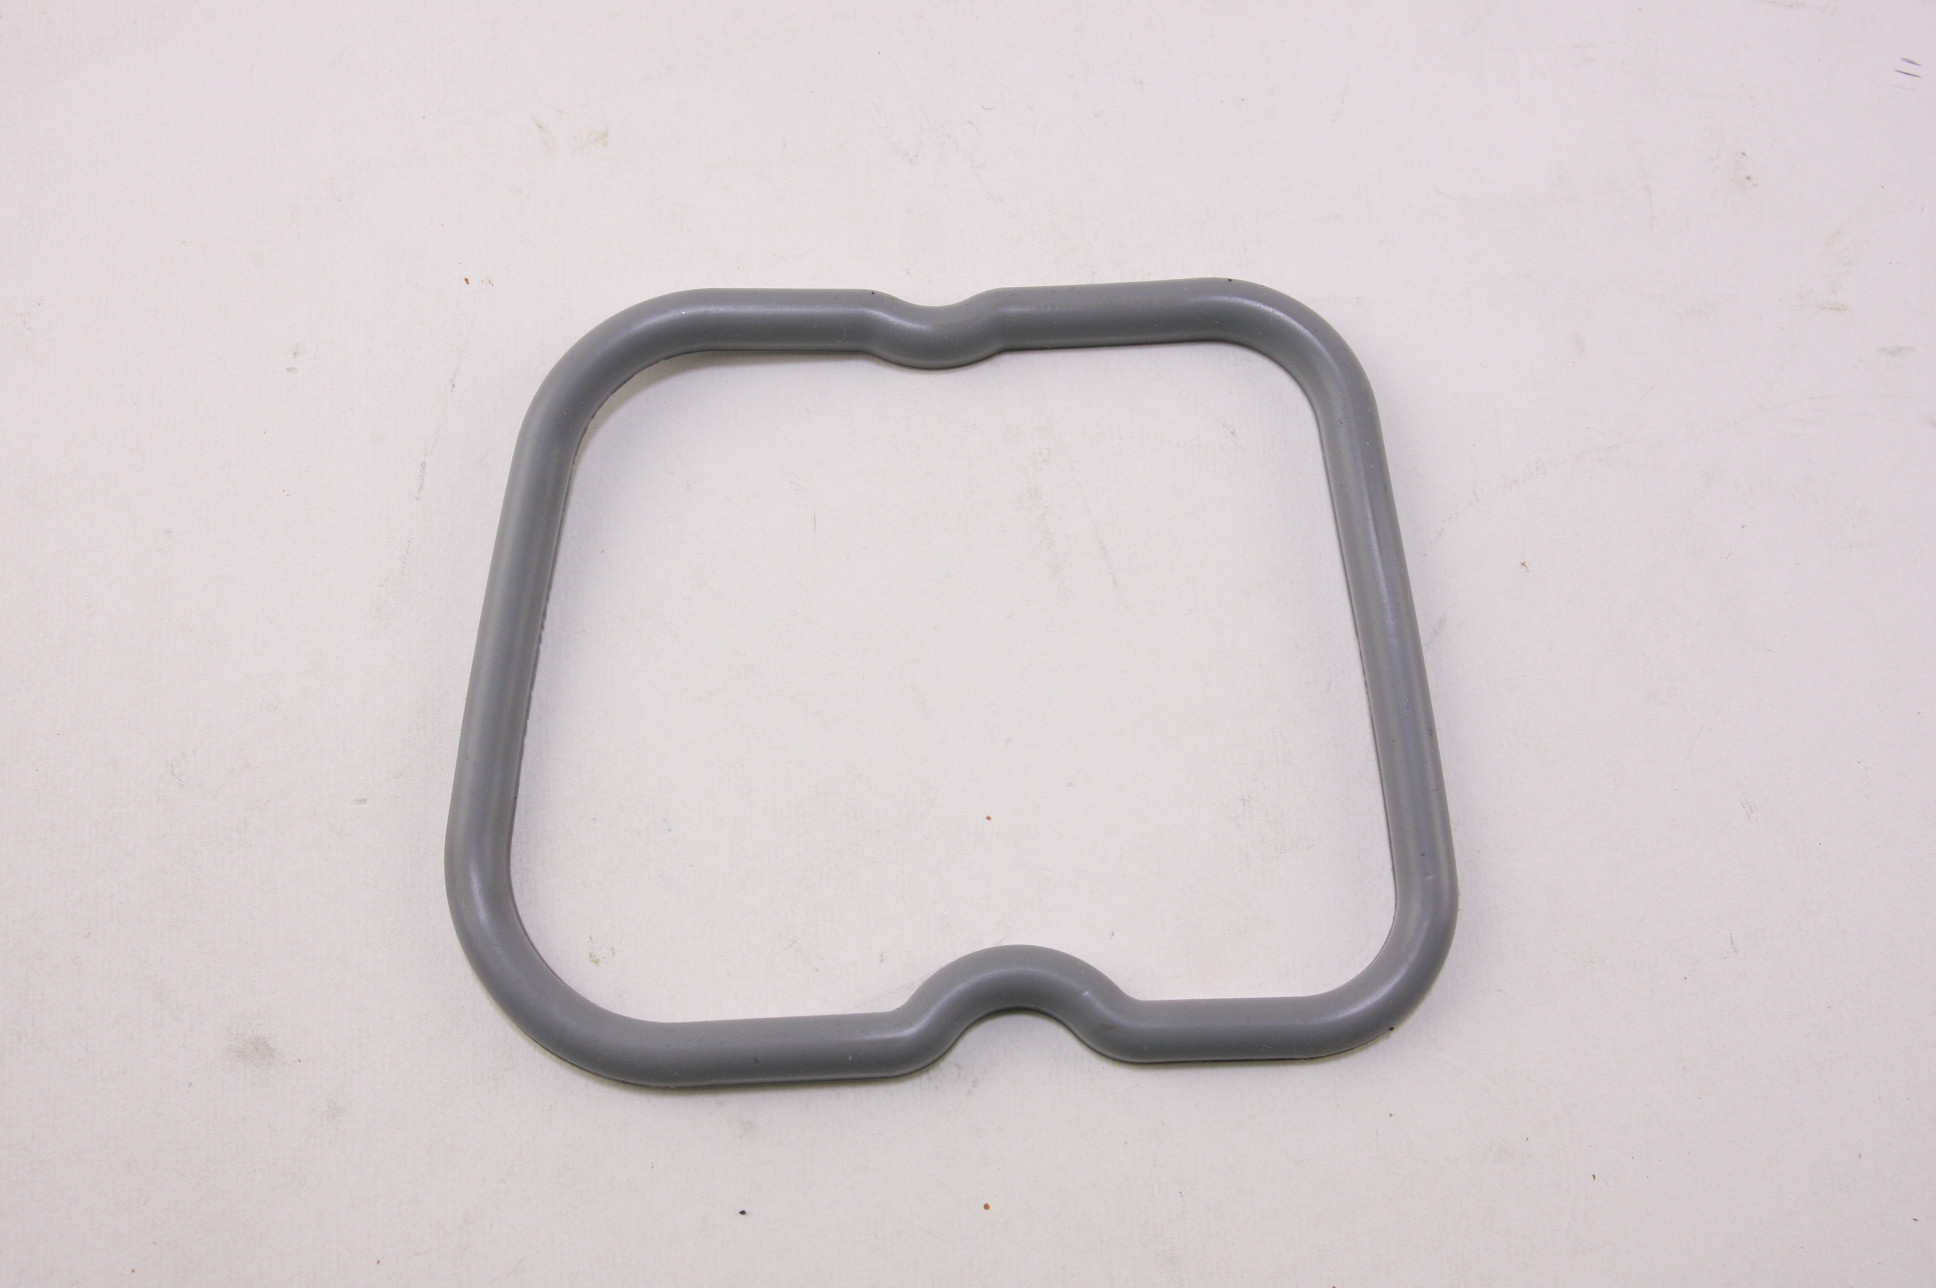 **~ New Mopar 5003468AA Engine Valve Cover Gasket 5003468-AA Free Shipping - image 3